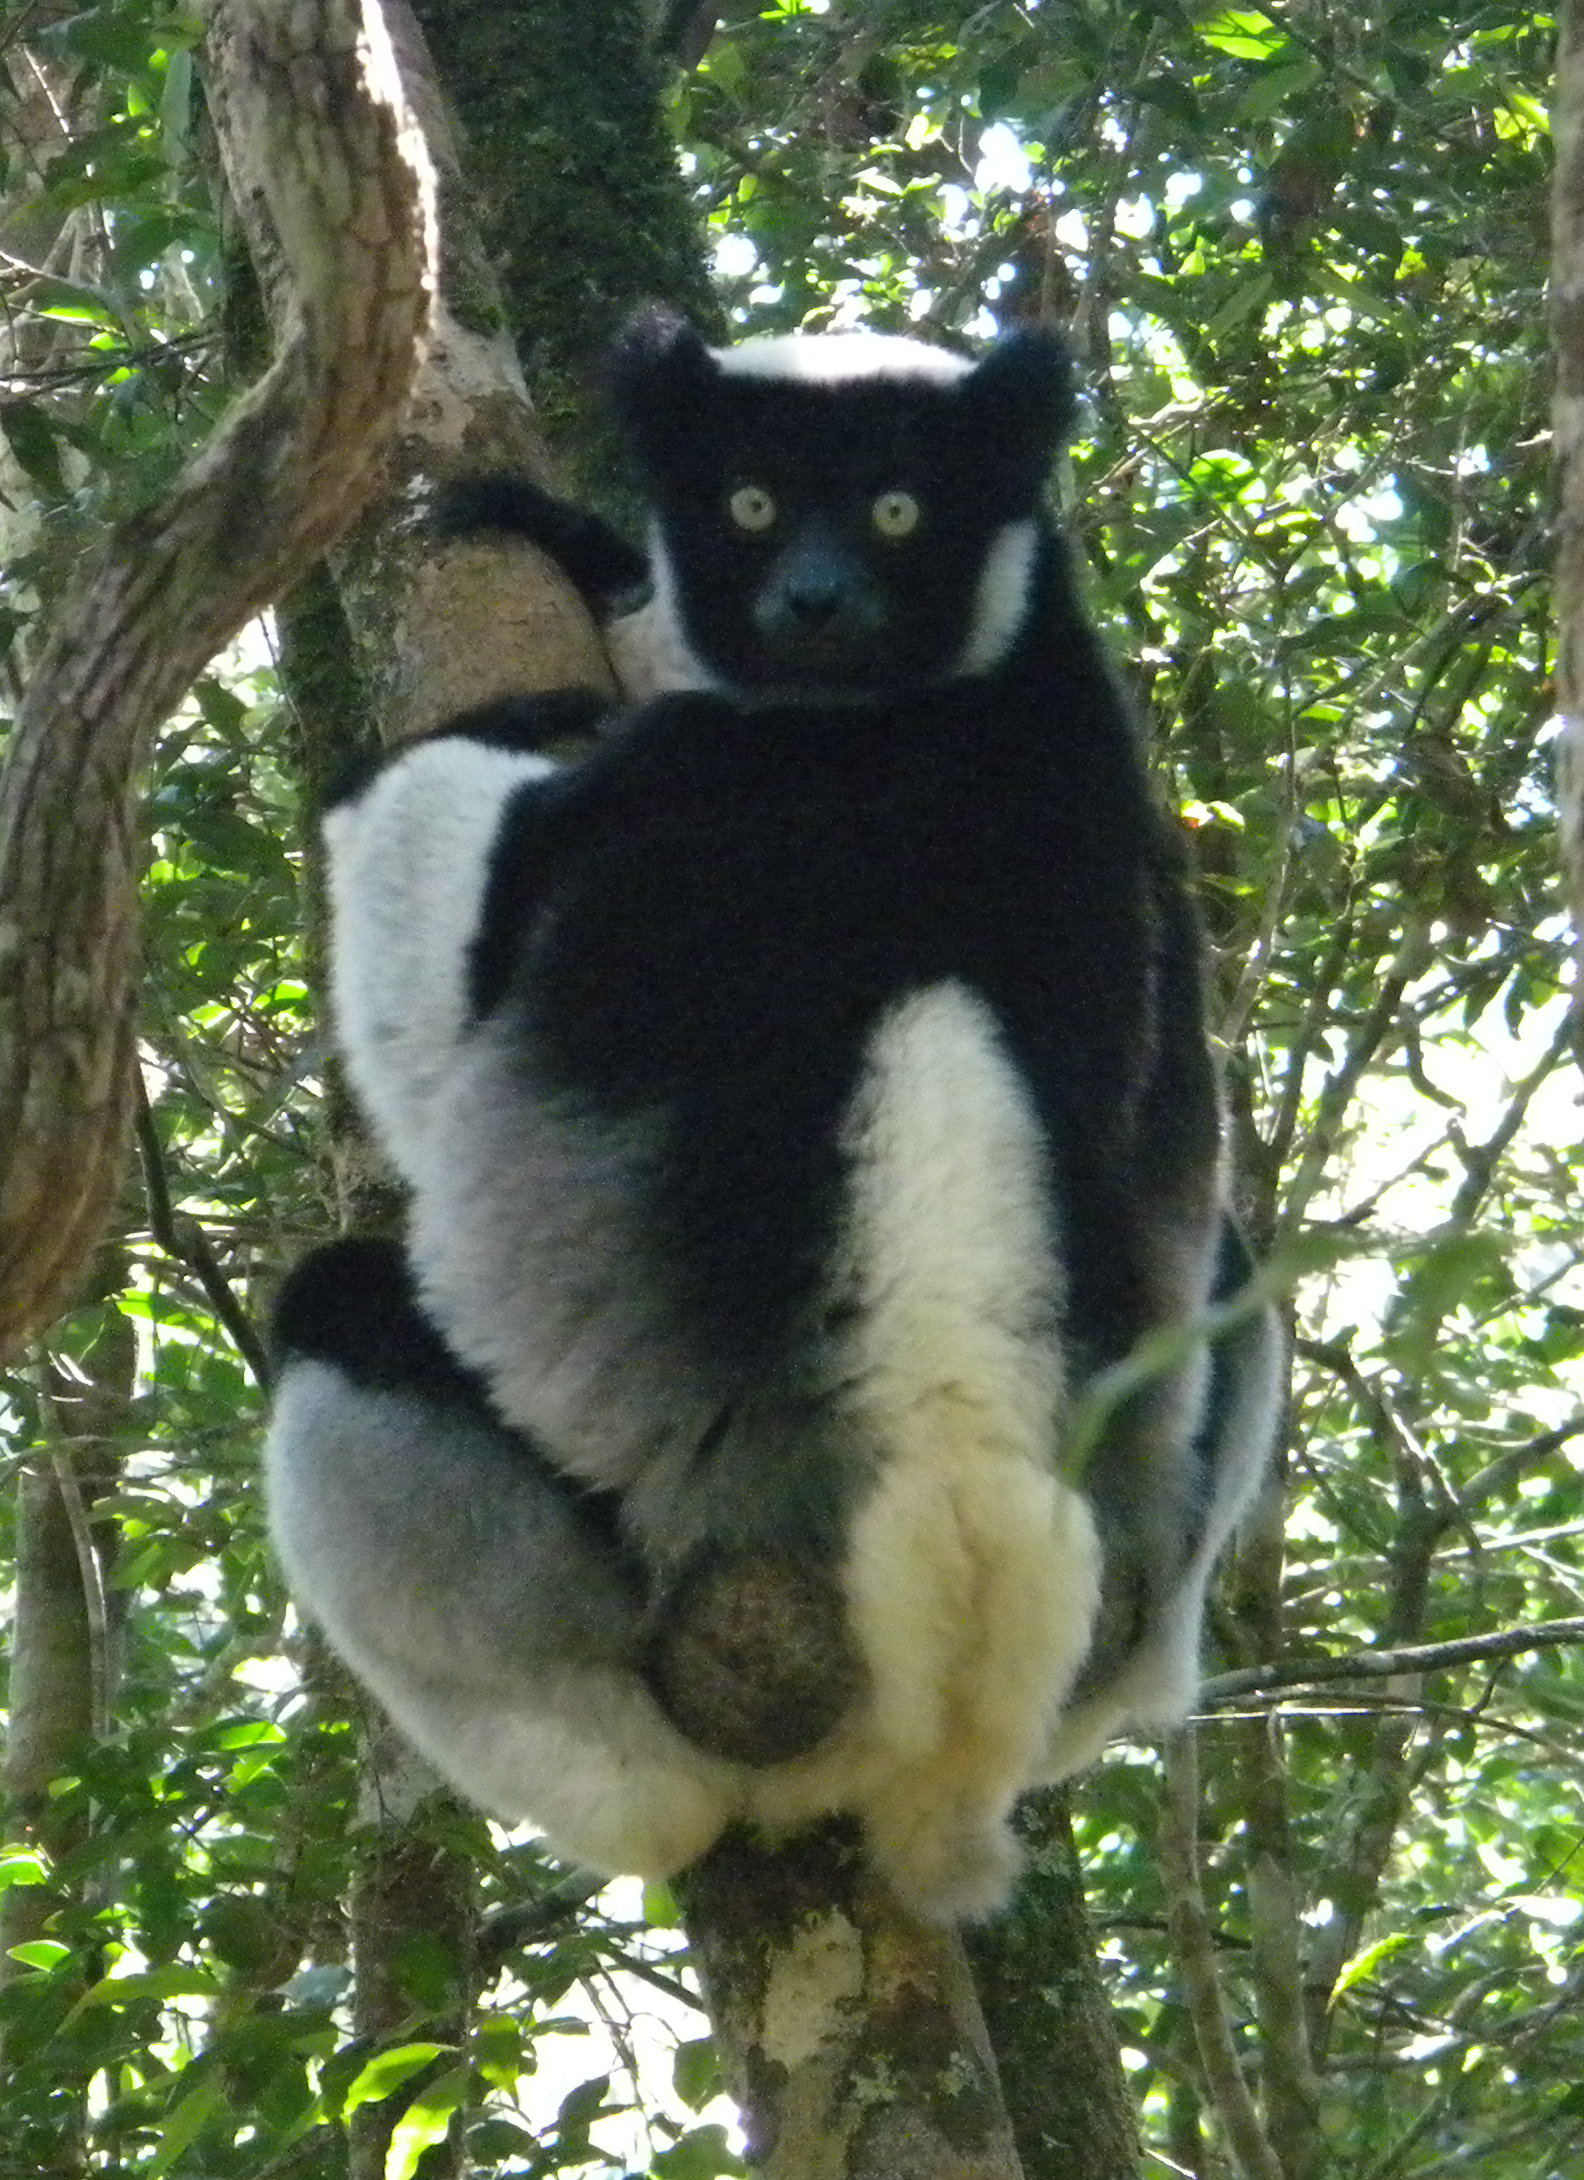 Ring tailed lemurs sexually dimorphic